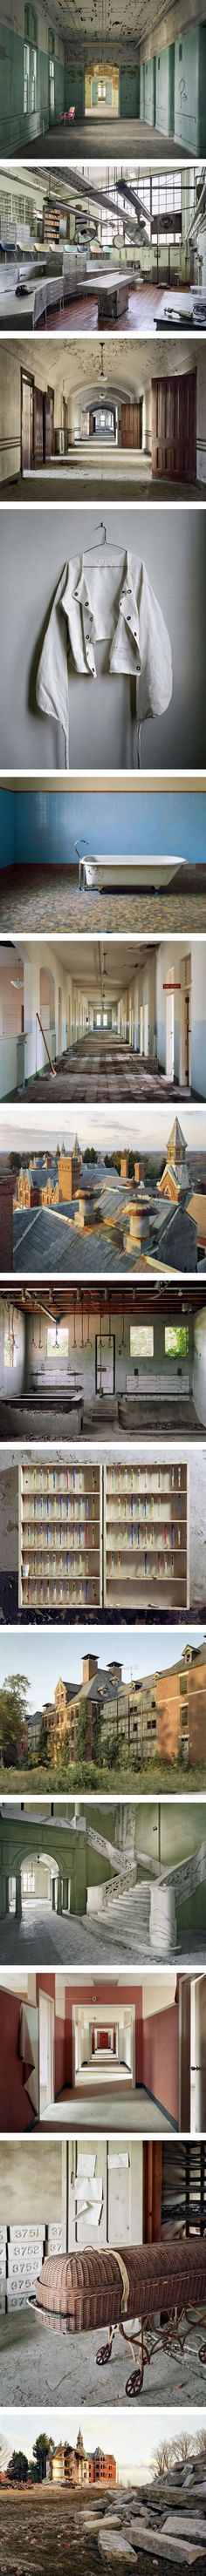 Photographer Documents Abandoned Mental Hospitals (By Christopher Payne) - 9GAG